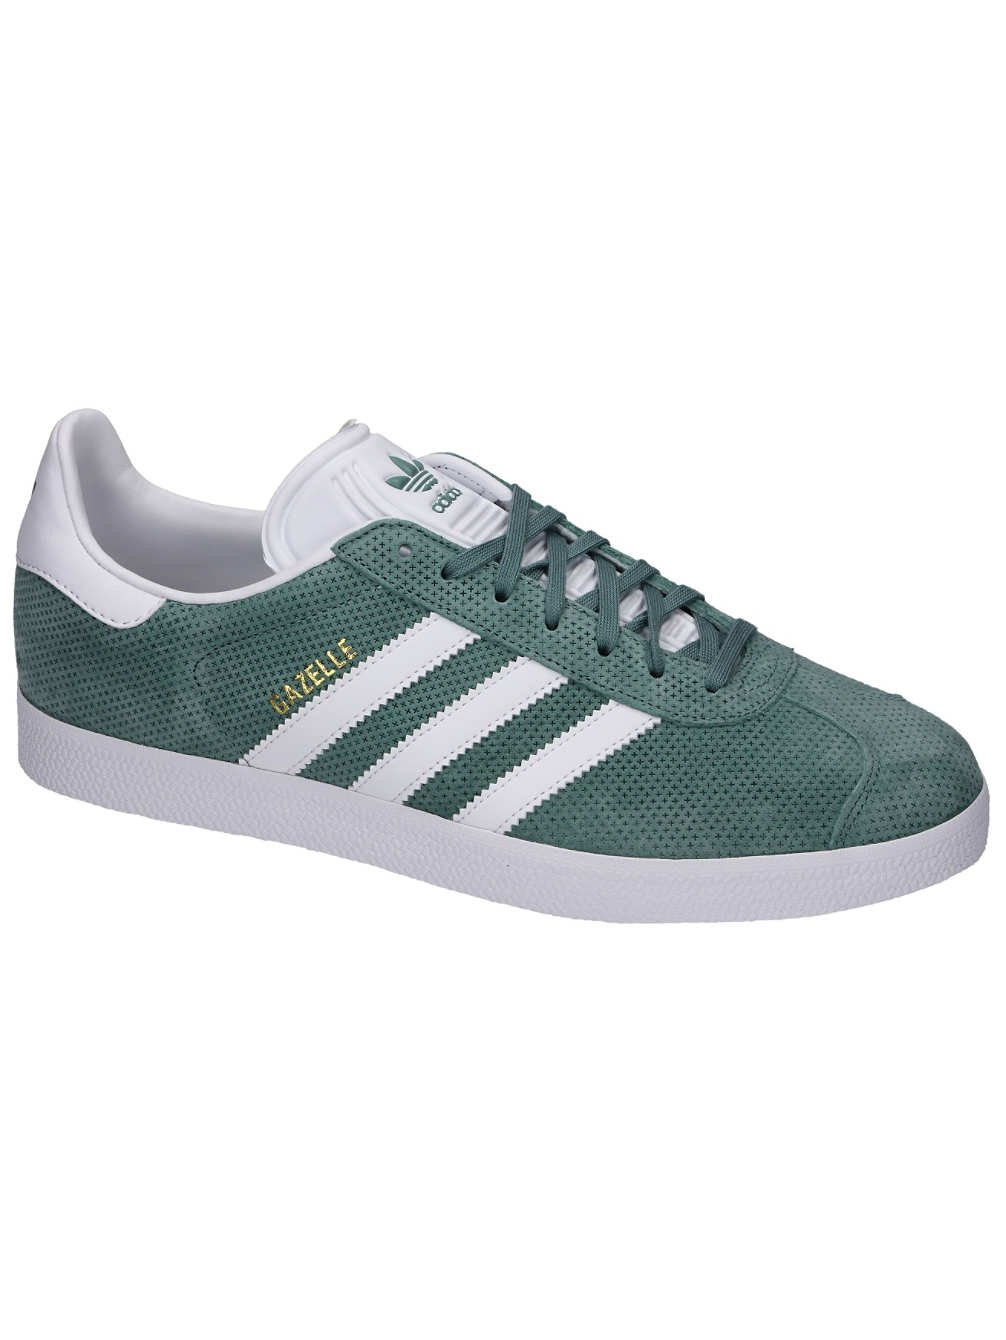 1a98cd8718a83 Adidas Men s Gazelle Sneakers  Amazon.co.uk  Sports   Outdoors